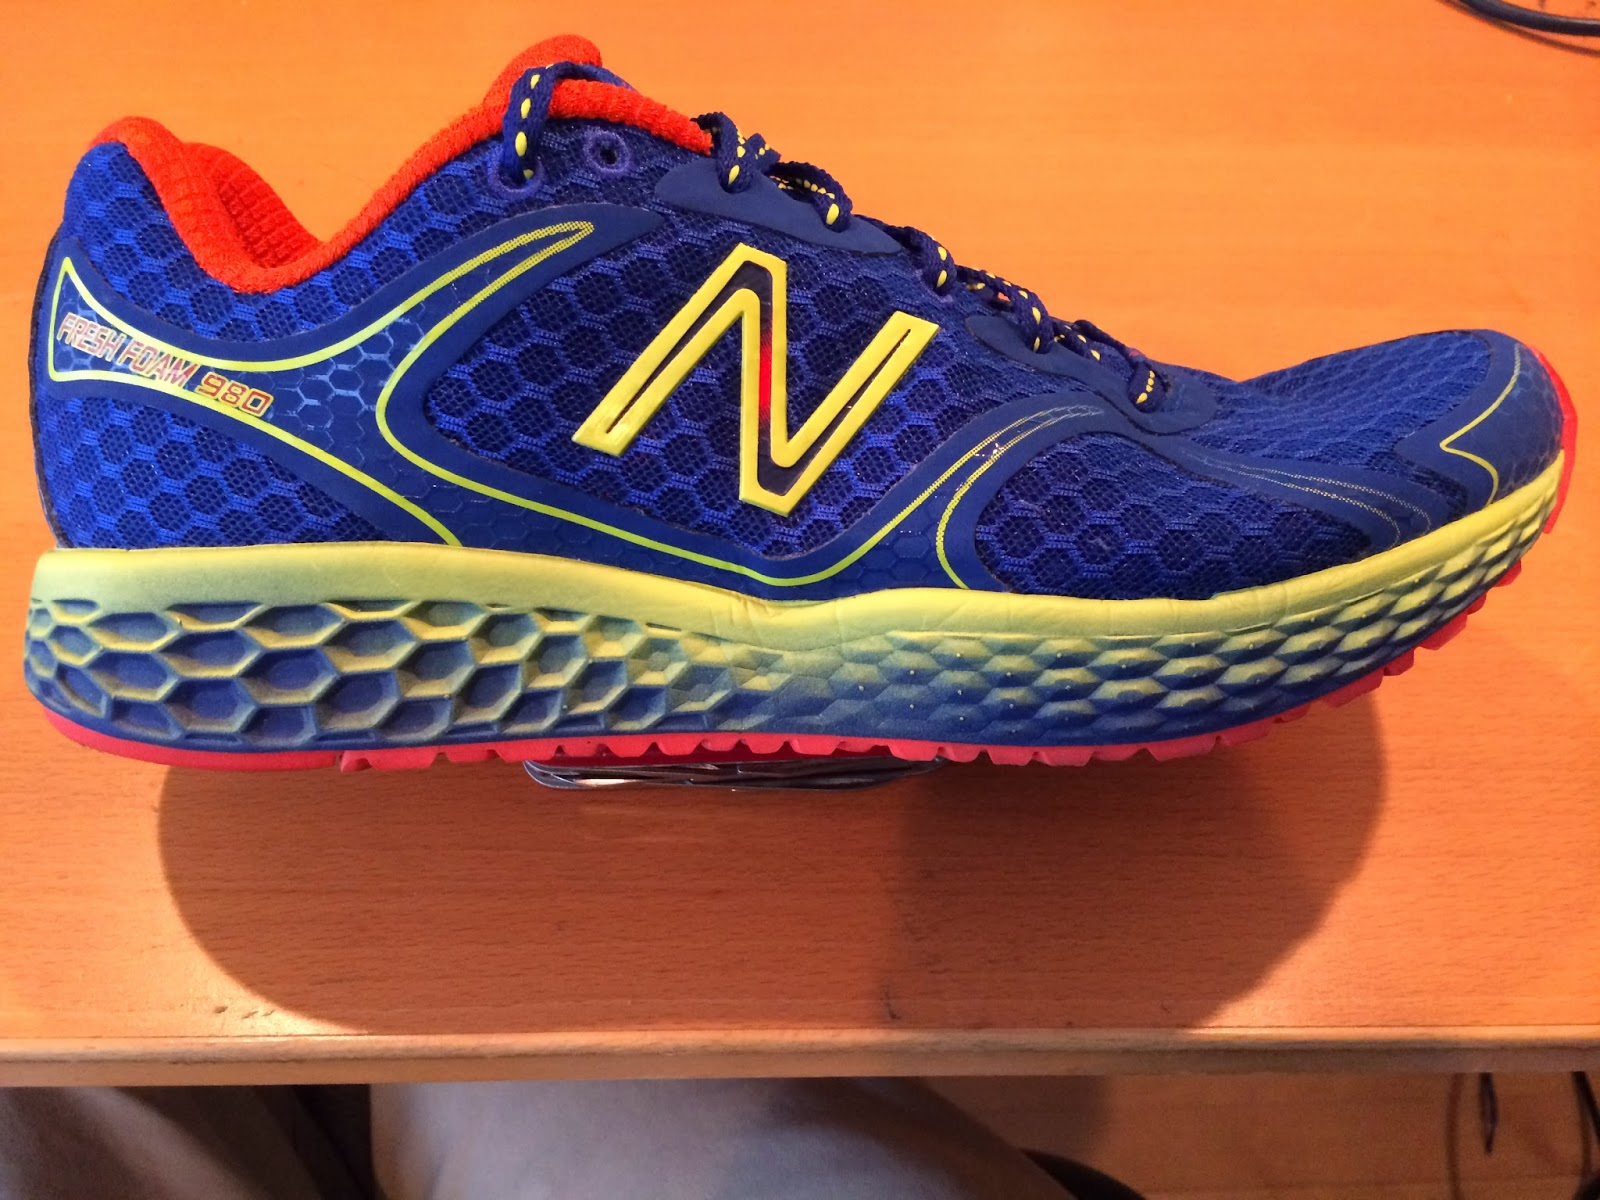 dabe871458b71 Road Trail Run: Review- New Balance 980 Fresh Foam: Supportive ...